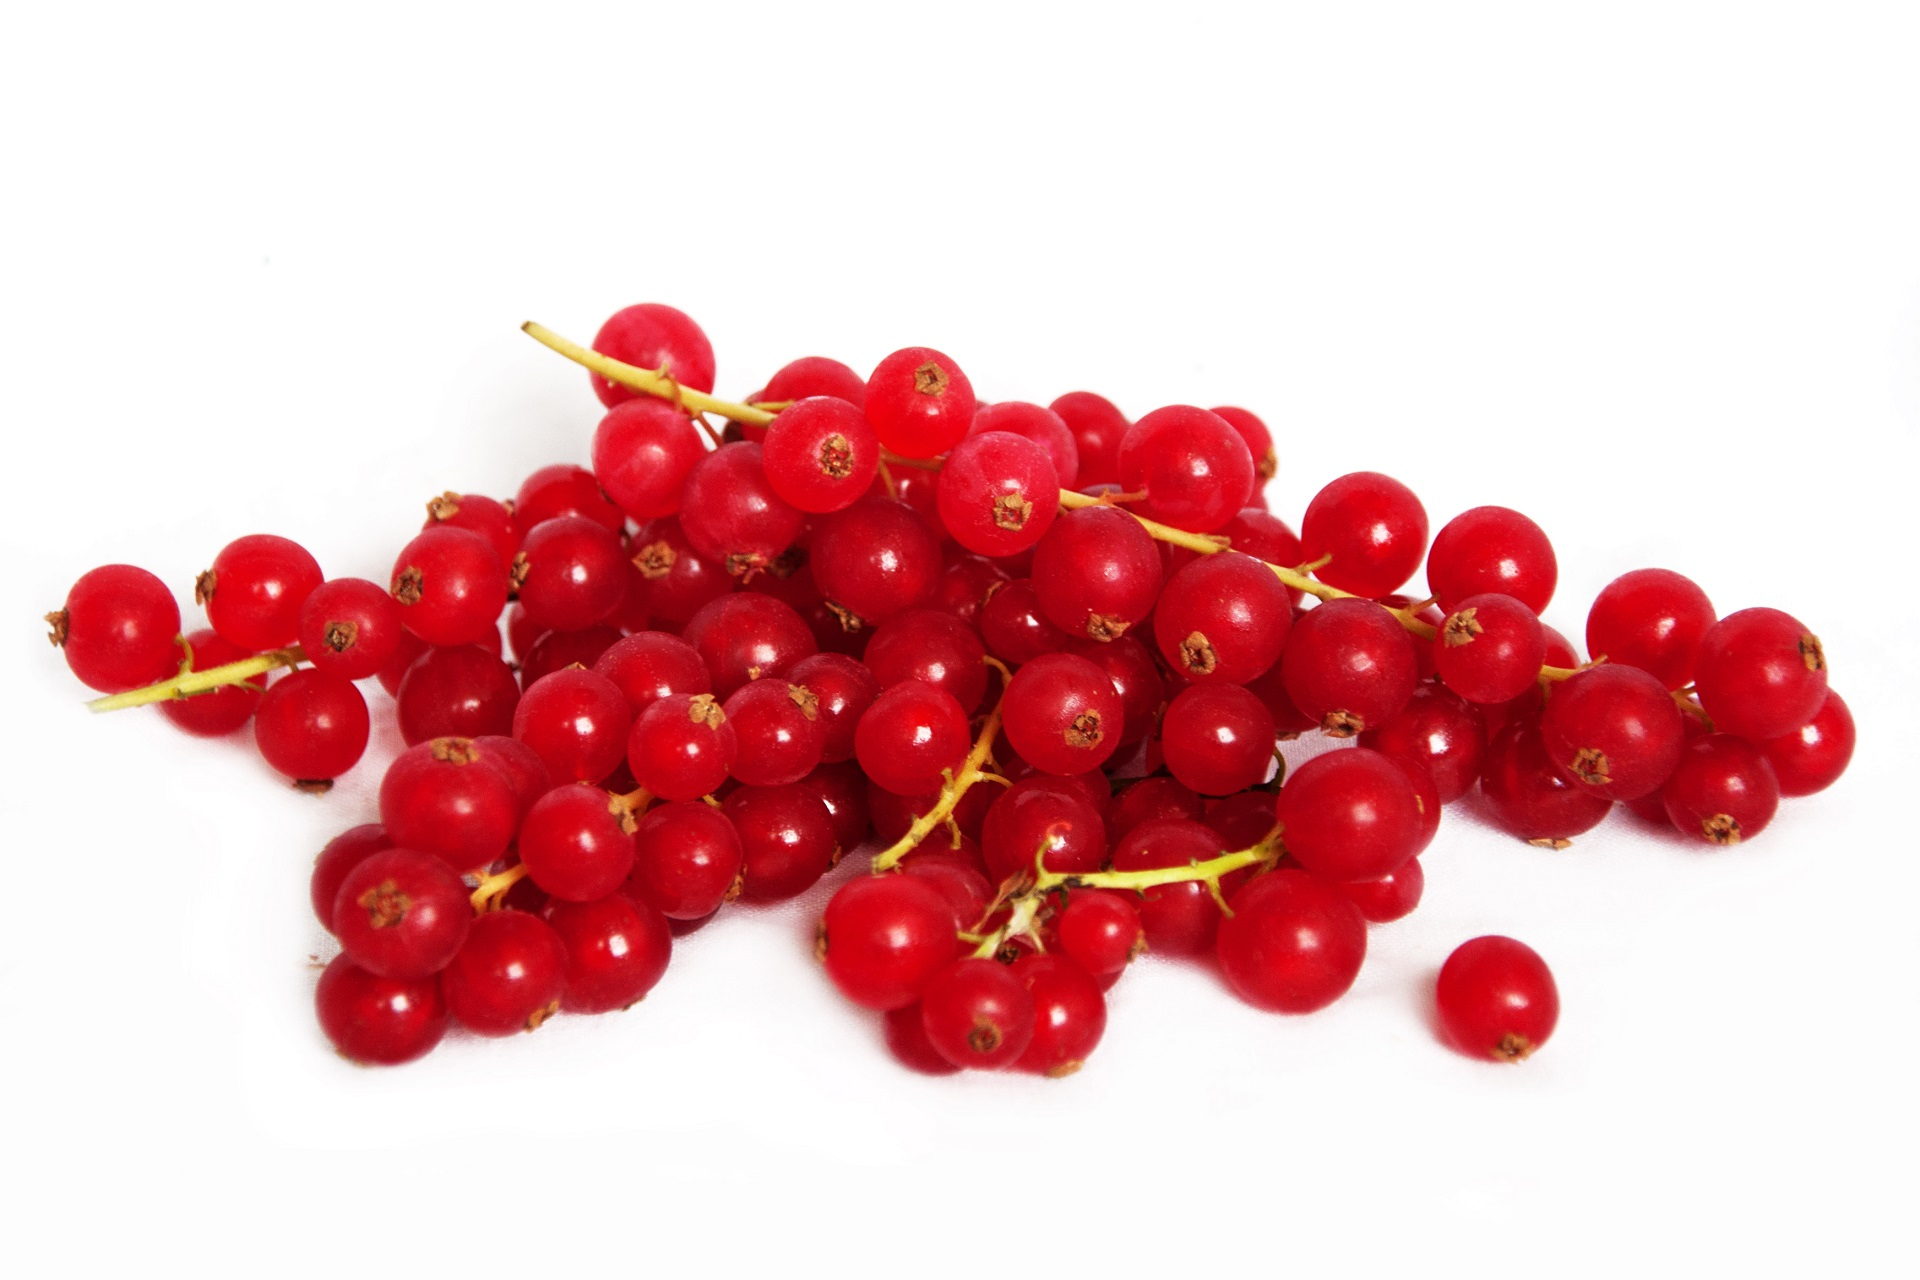 stockvault-red-currant133987